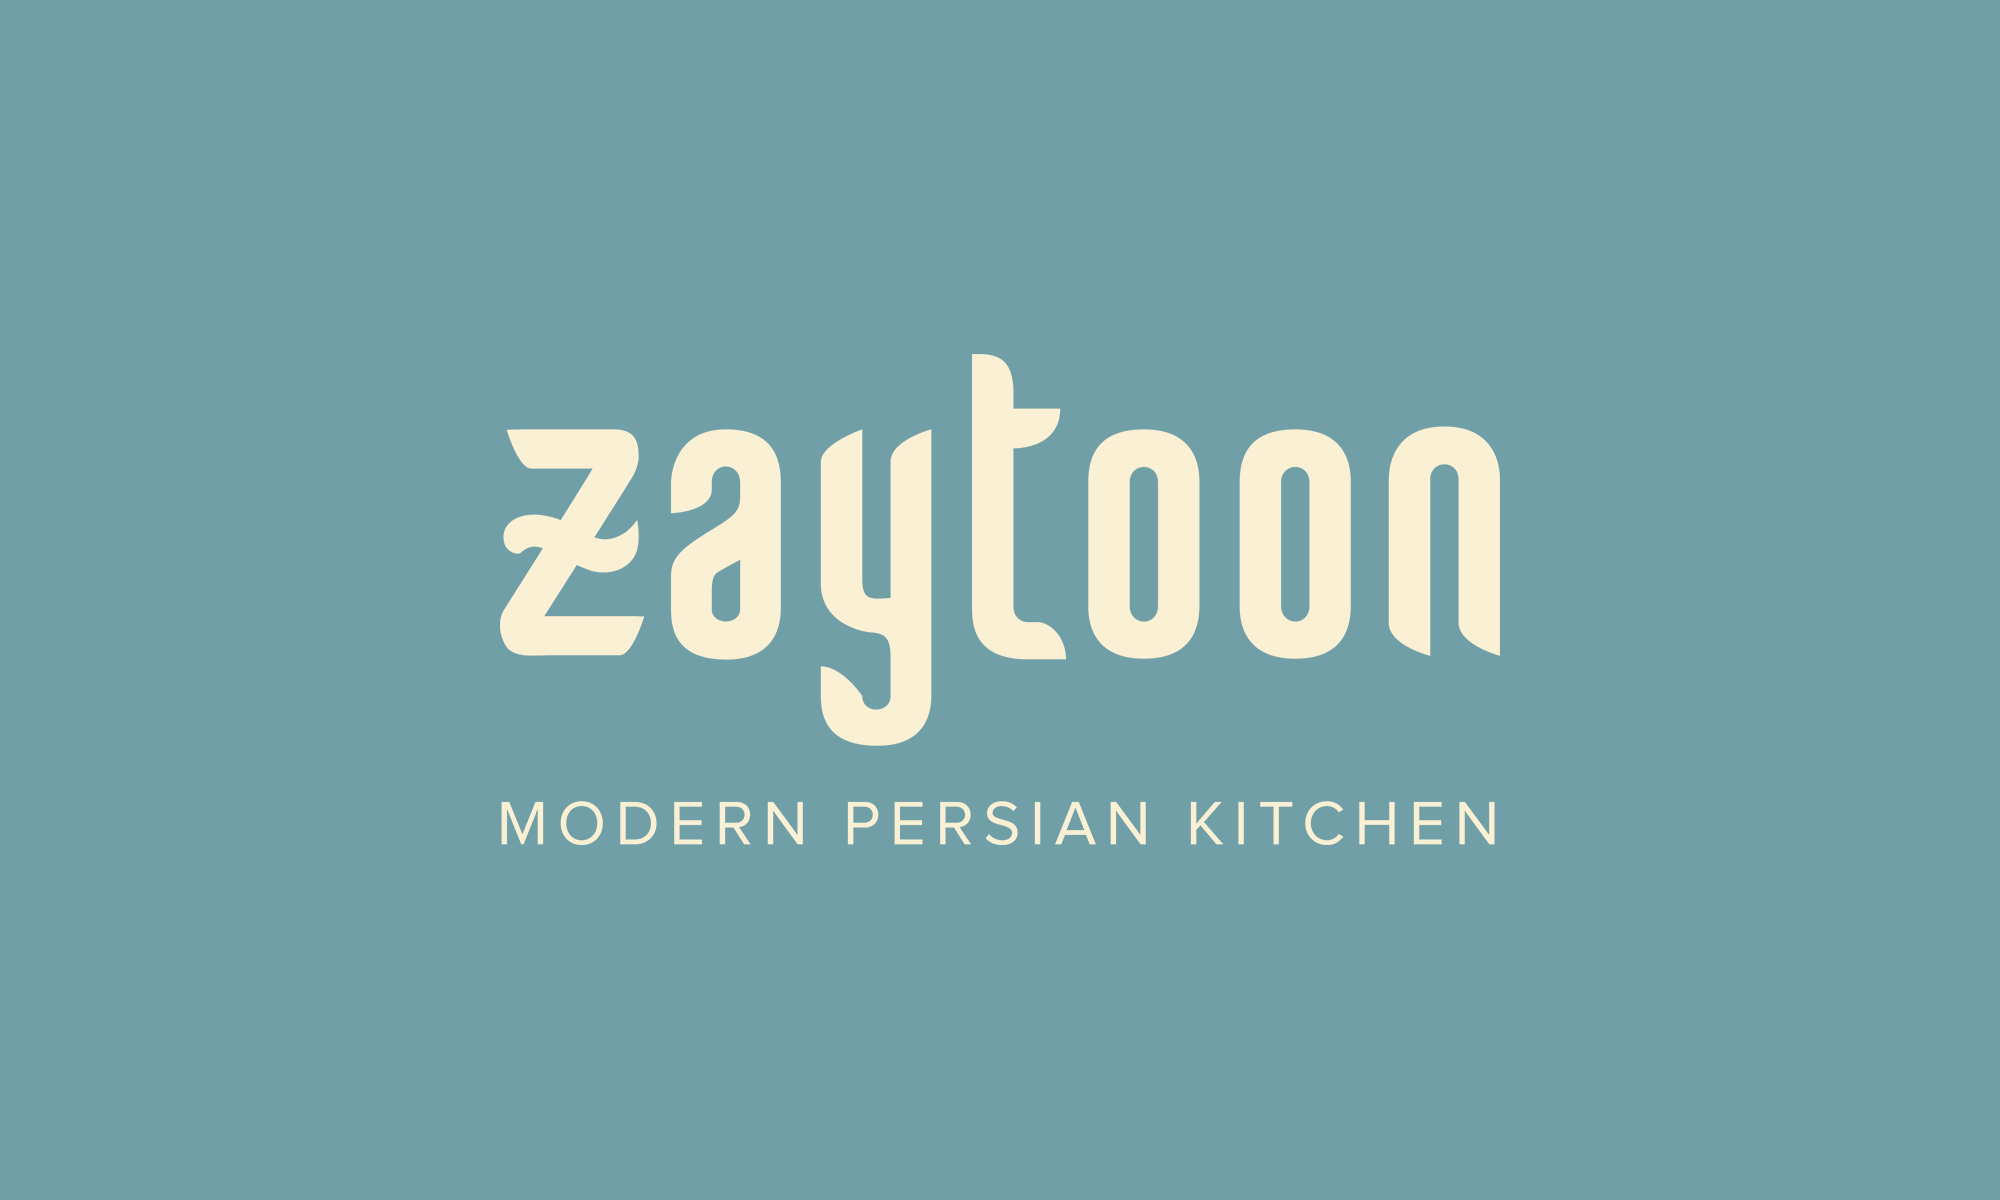 Cover image: ZAYTOON - Modern Persian Kitchen